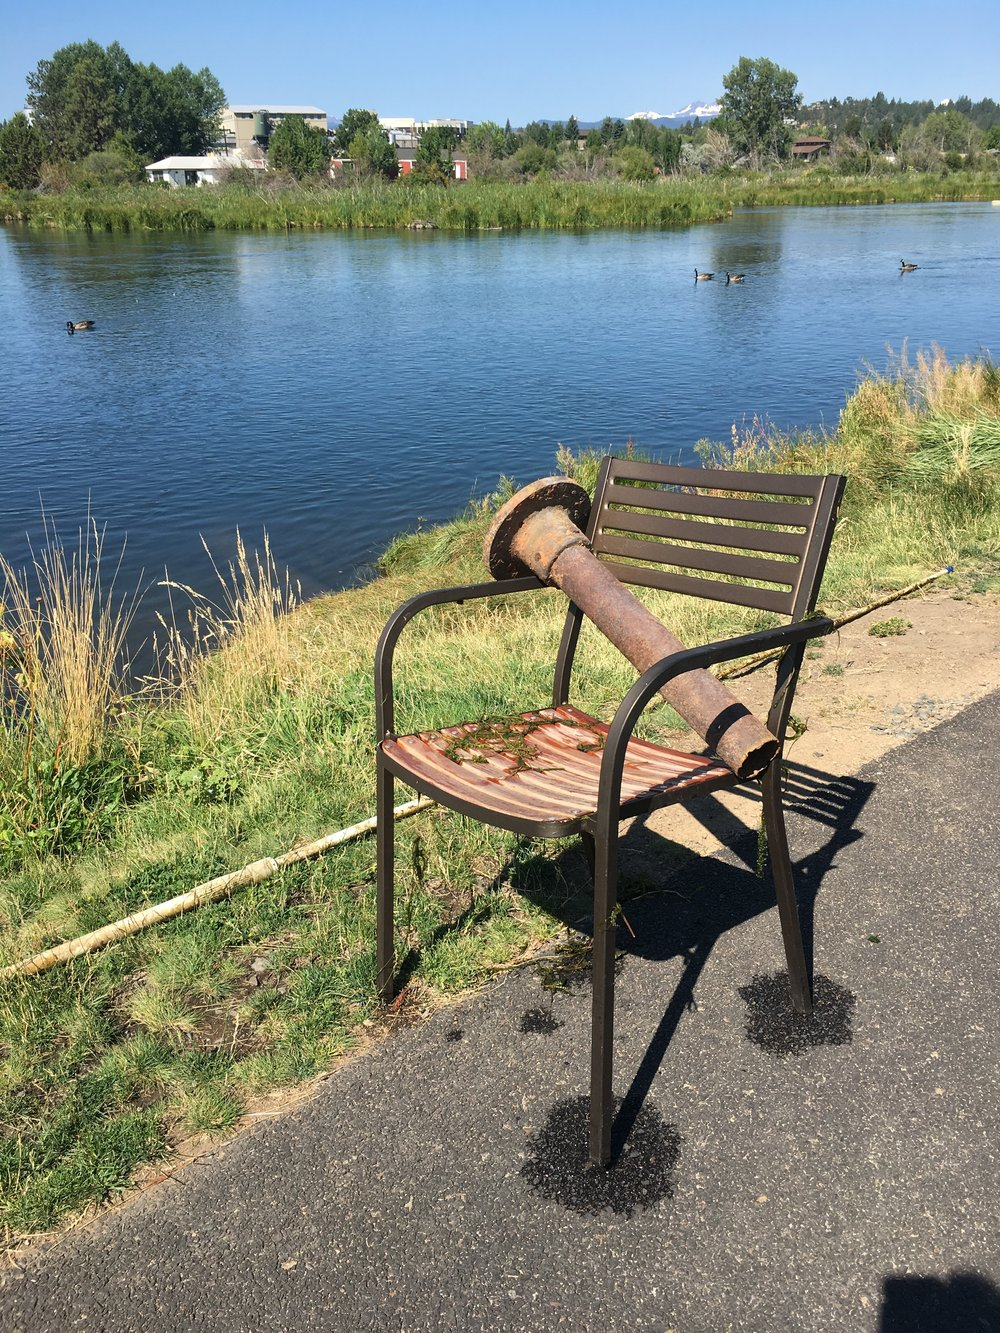 A patio chair and two wasted pipes were recovered from the bottom of the river.